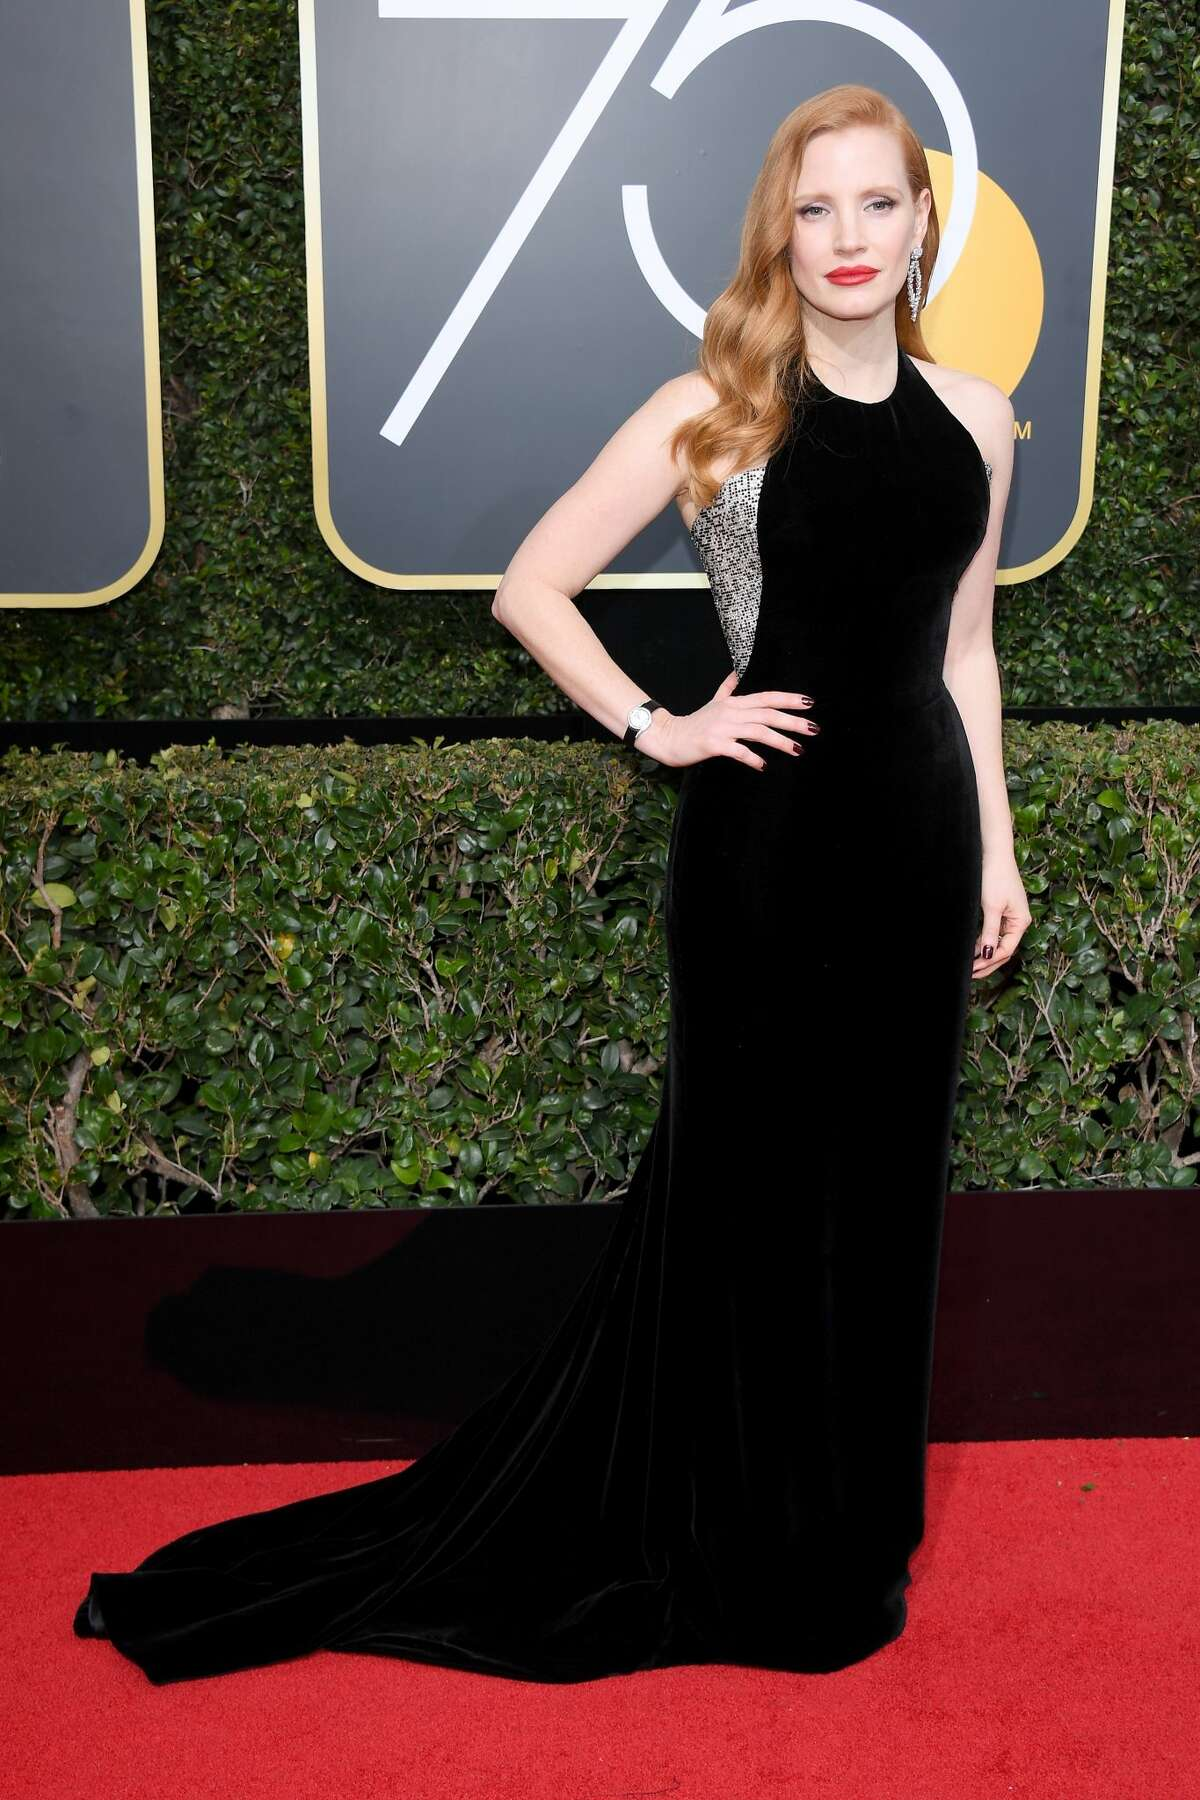 Best:Jessica Chastain's gown resembles Blake Lively's Golden Globe gown from last year (look it up), but she still looks terrific.